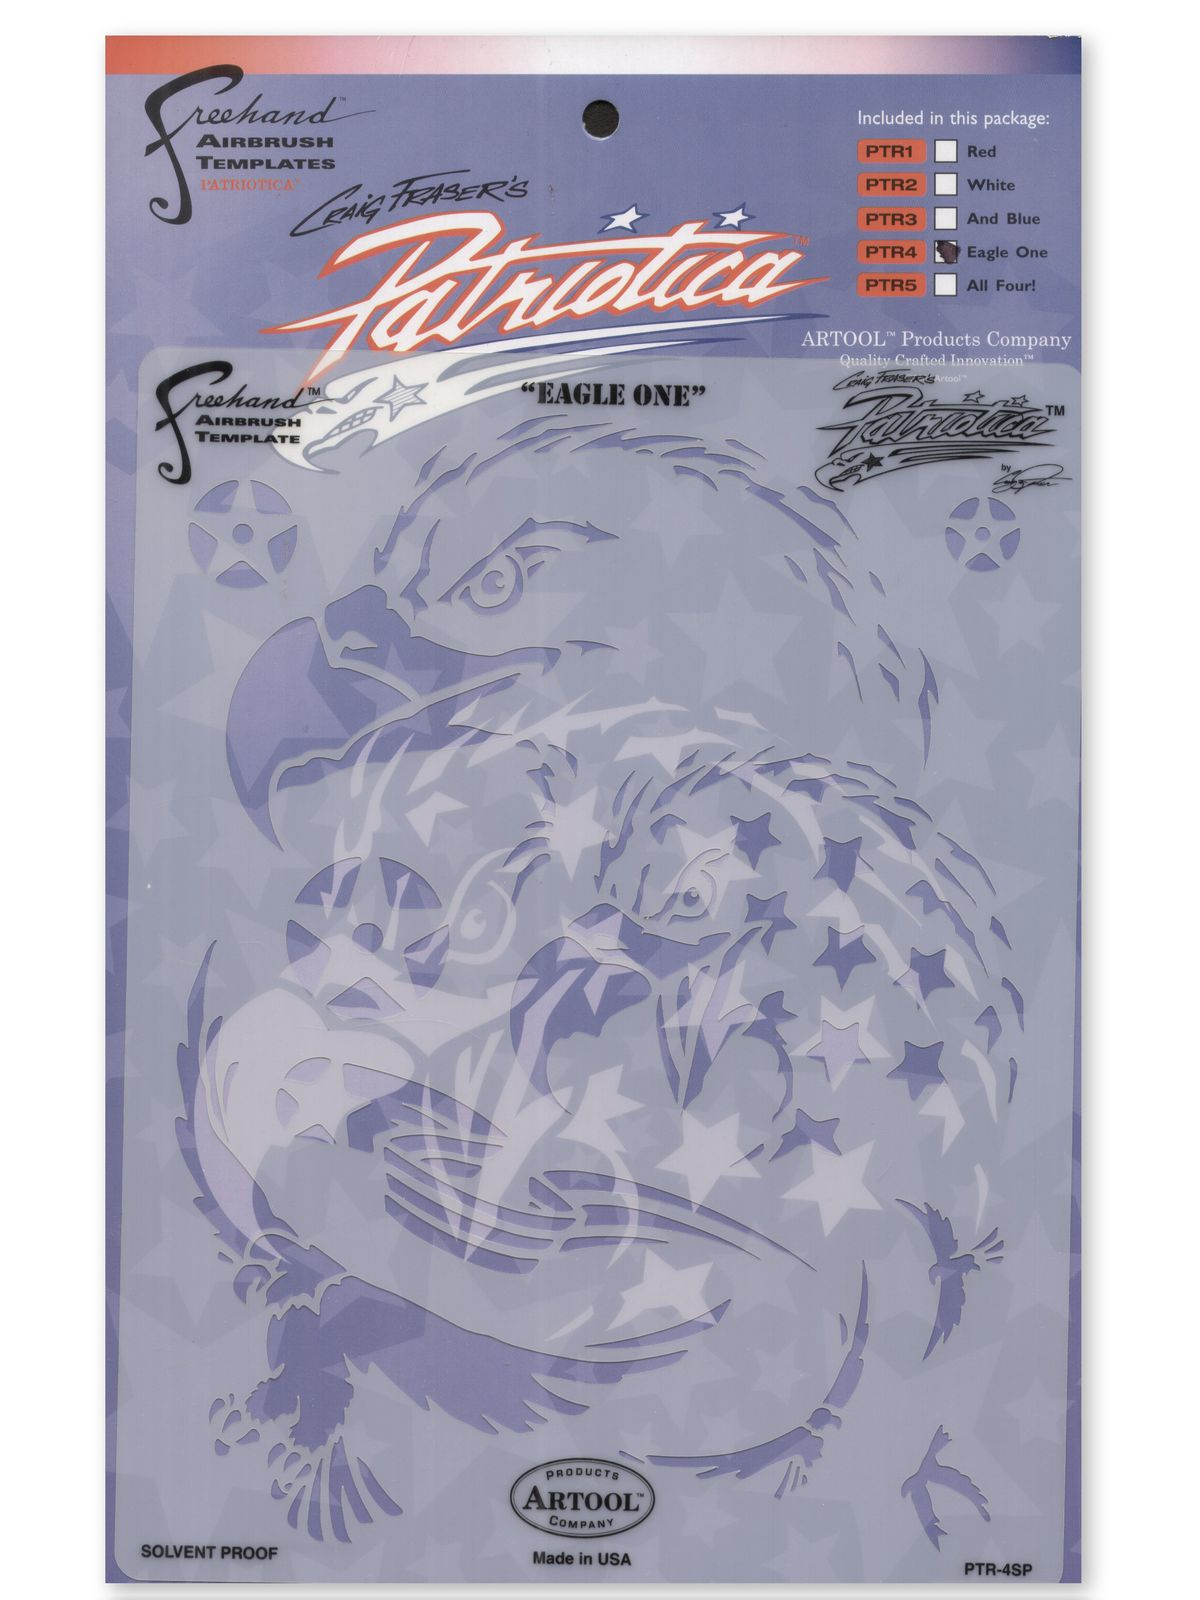 ARTOOL Patriotica Eagle One Freehand Airbrush Template by Craig Fraser